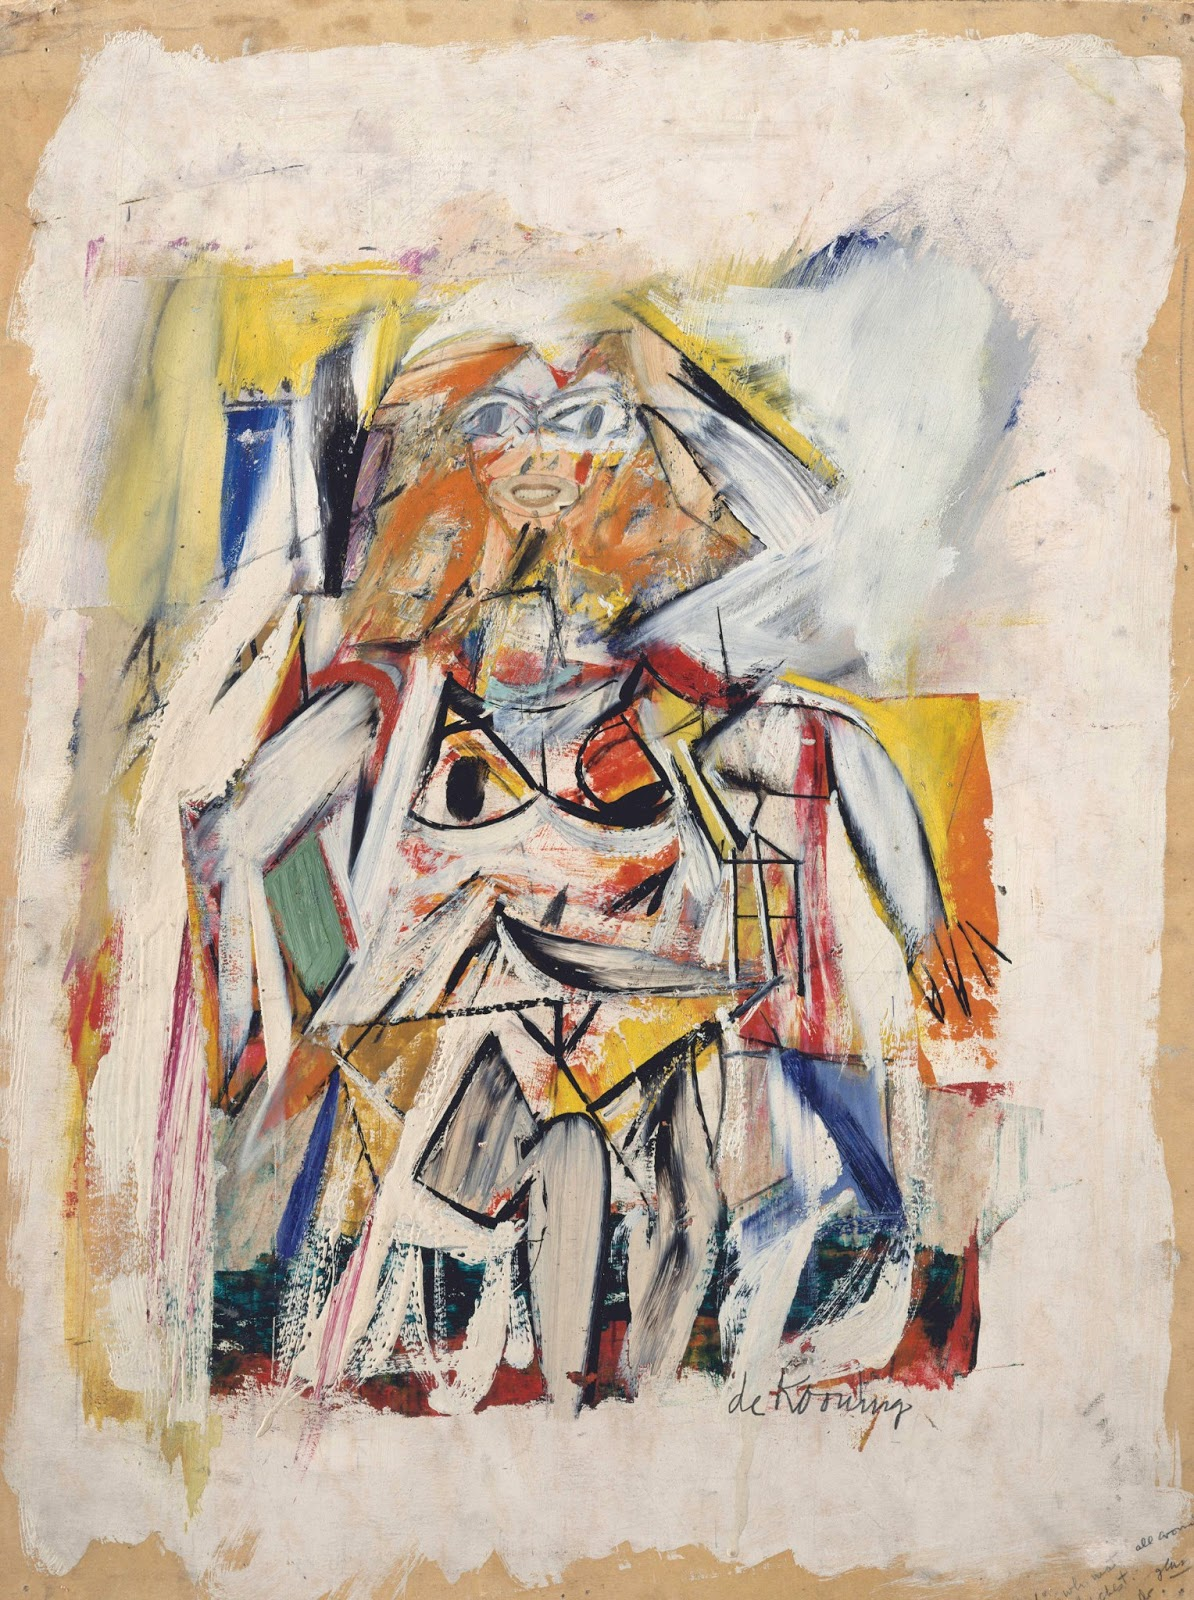 Woman   1950  Oil  cut and pasted paper on cardboard  14 3 4x 11 5 8    Willem De Kooning Abstract Expressionist Paintings